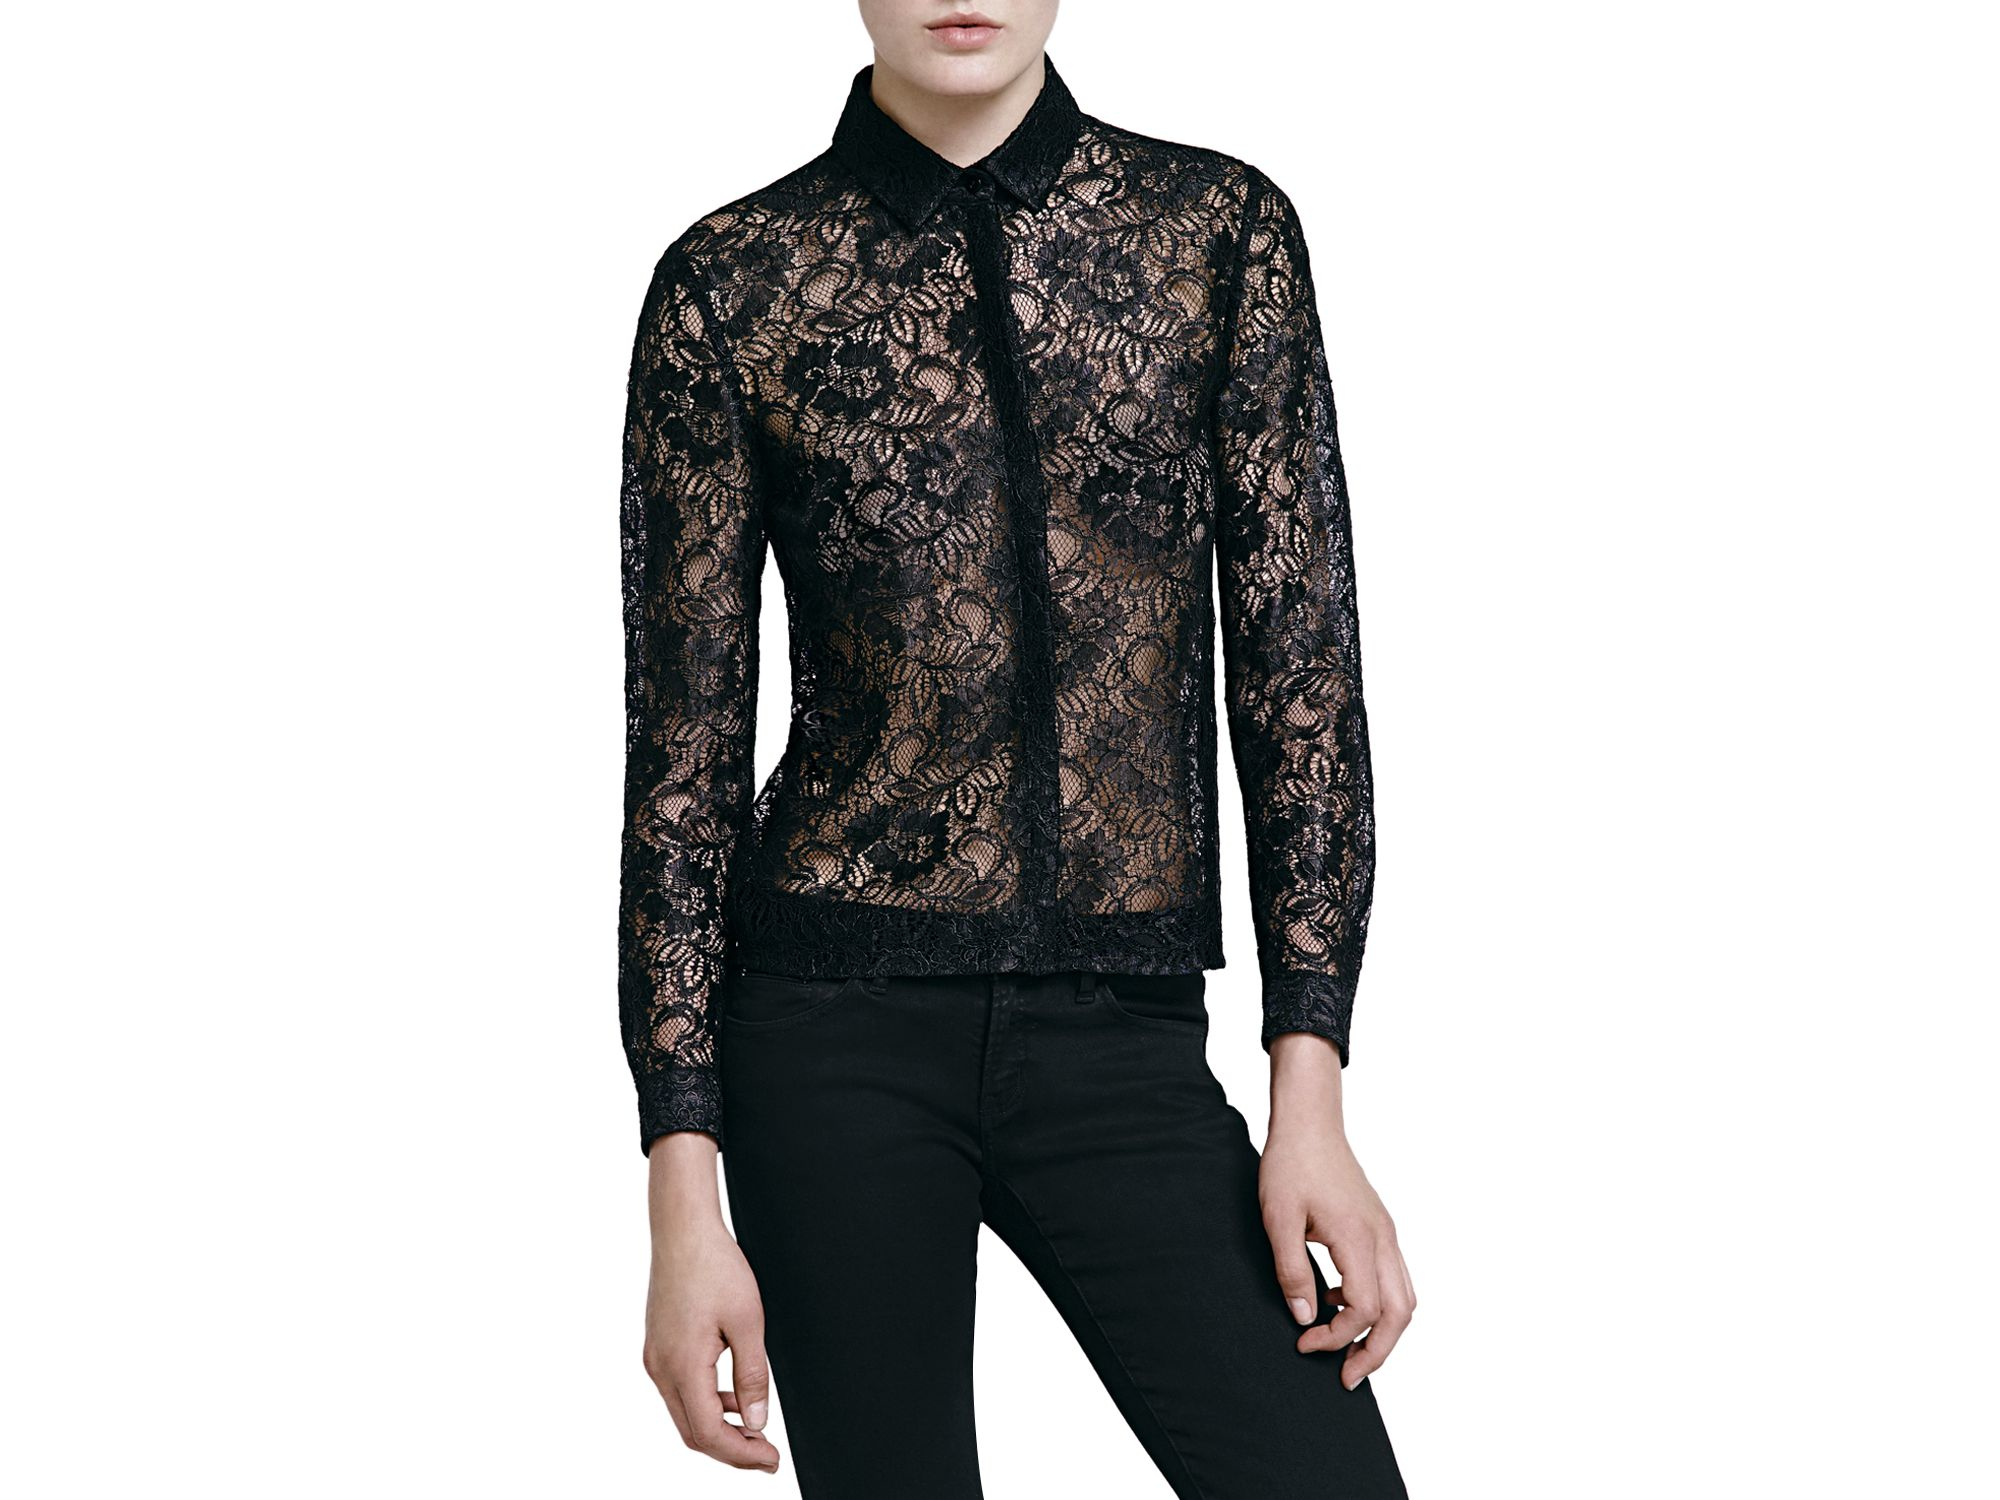 5908e3eb81 The Kooples Laminated Lace Shirt in Black - Lyst